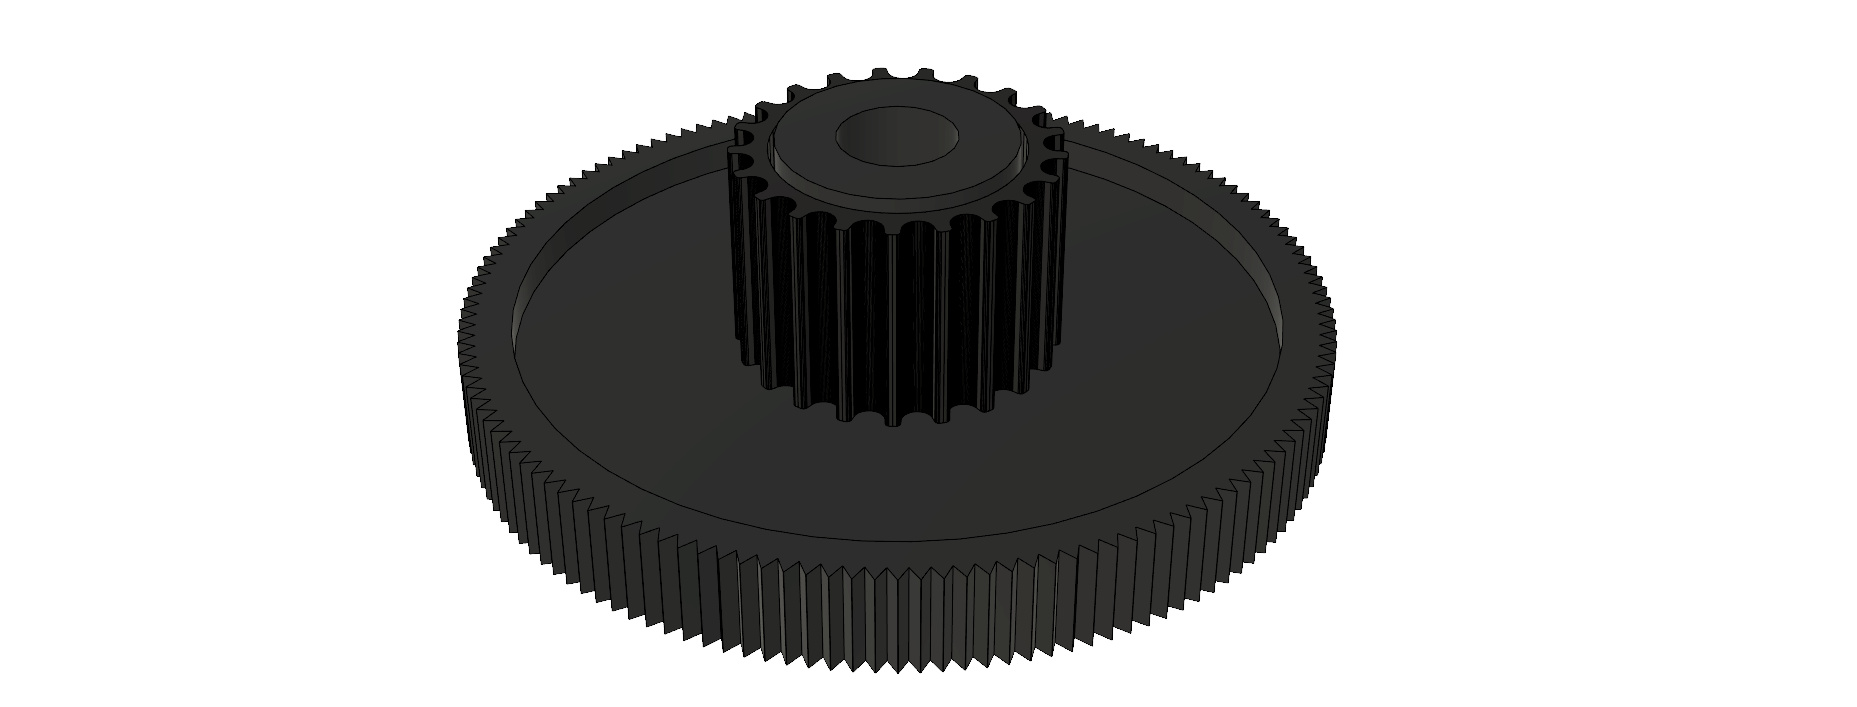 FFB Yoke v1 Instructions Cog_bm10